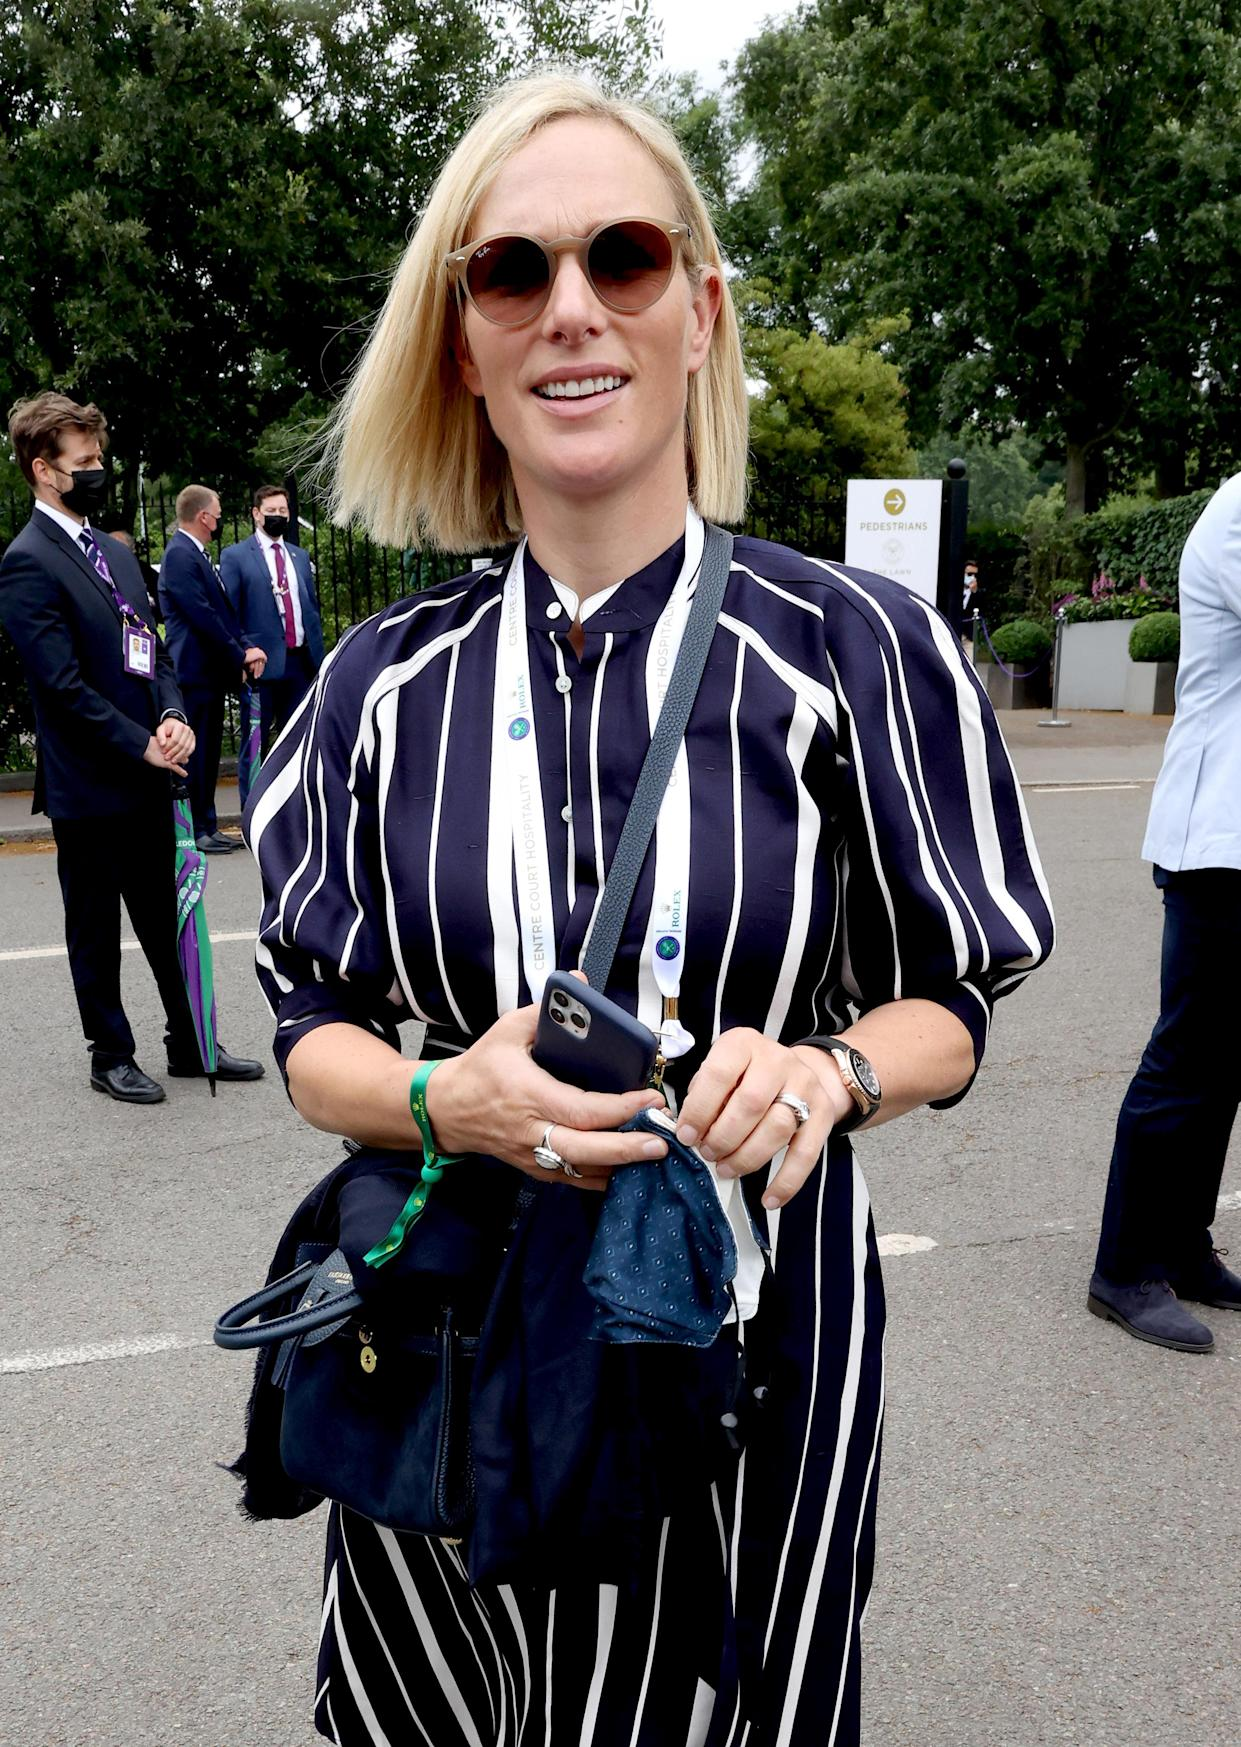 LONDON, ENGLAND - JULY 07: Zara Tindall attends Wimbledon Championships Tennis Tournament at All England Lawn Tennis and Croquet Club on July 07, 2021 in London, England. (Photo by Karwai Tang/WireImage)